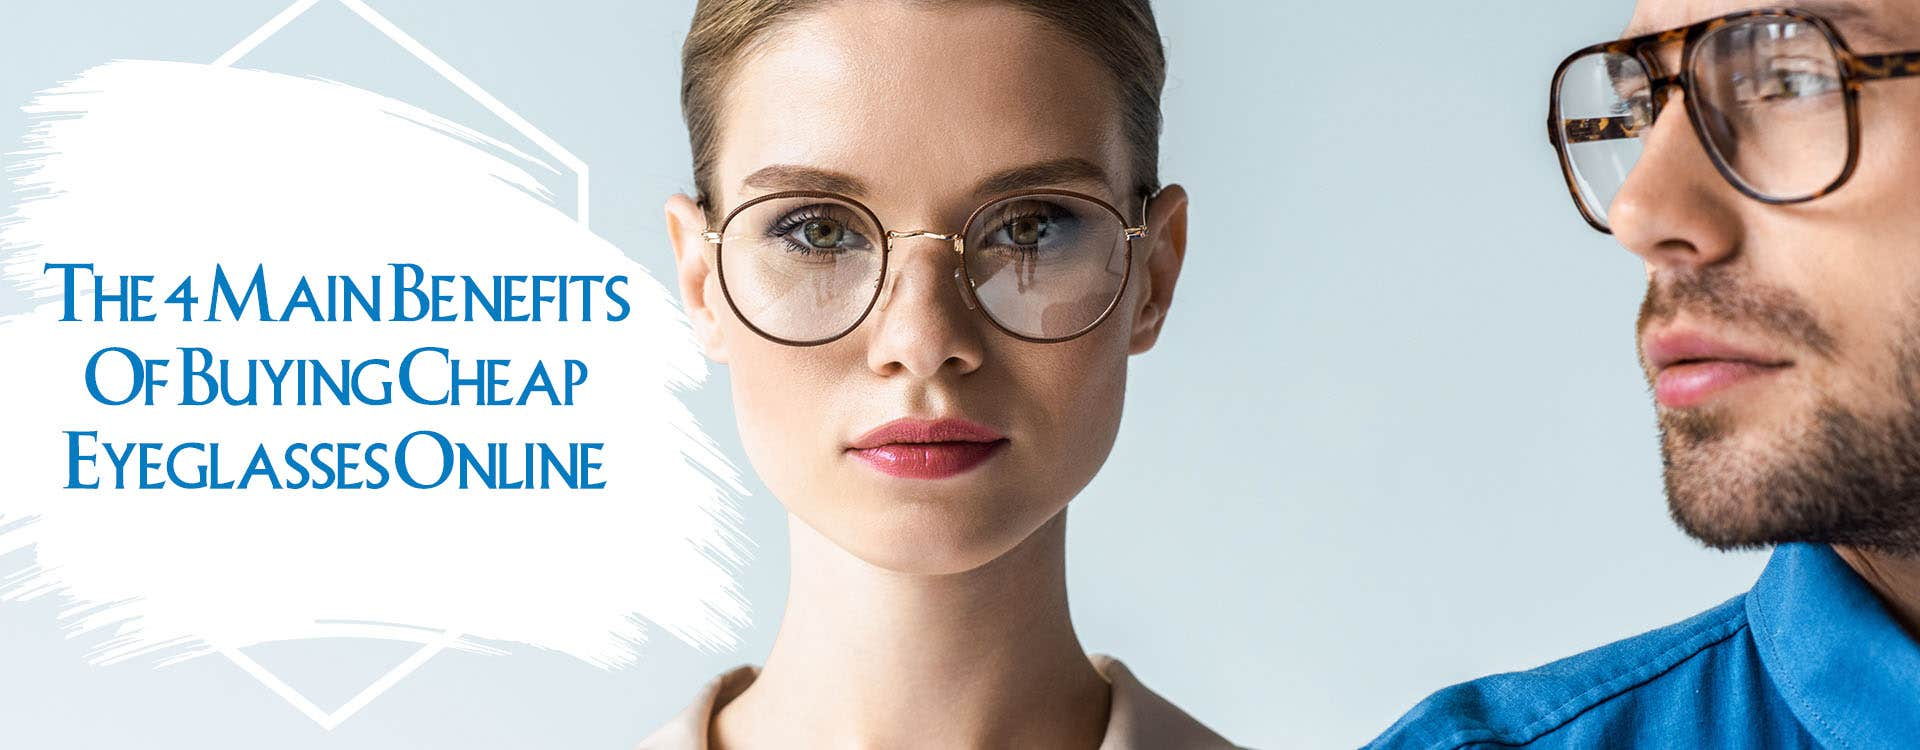 The 4 Main Benefits of Buying Cheap Eyeglasses Online